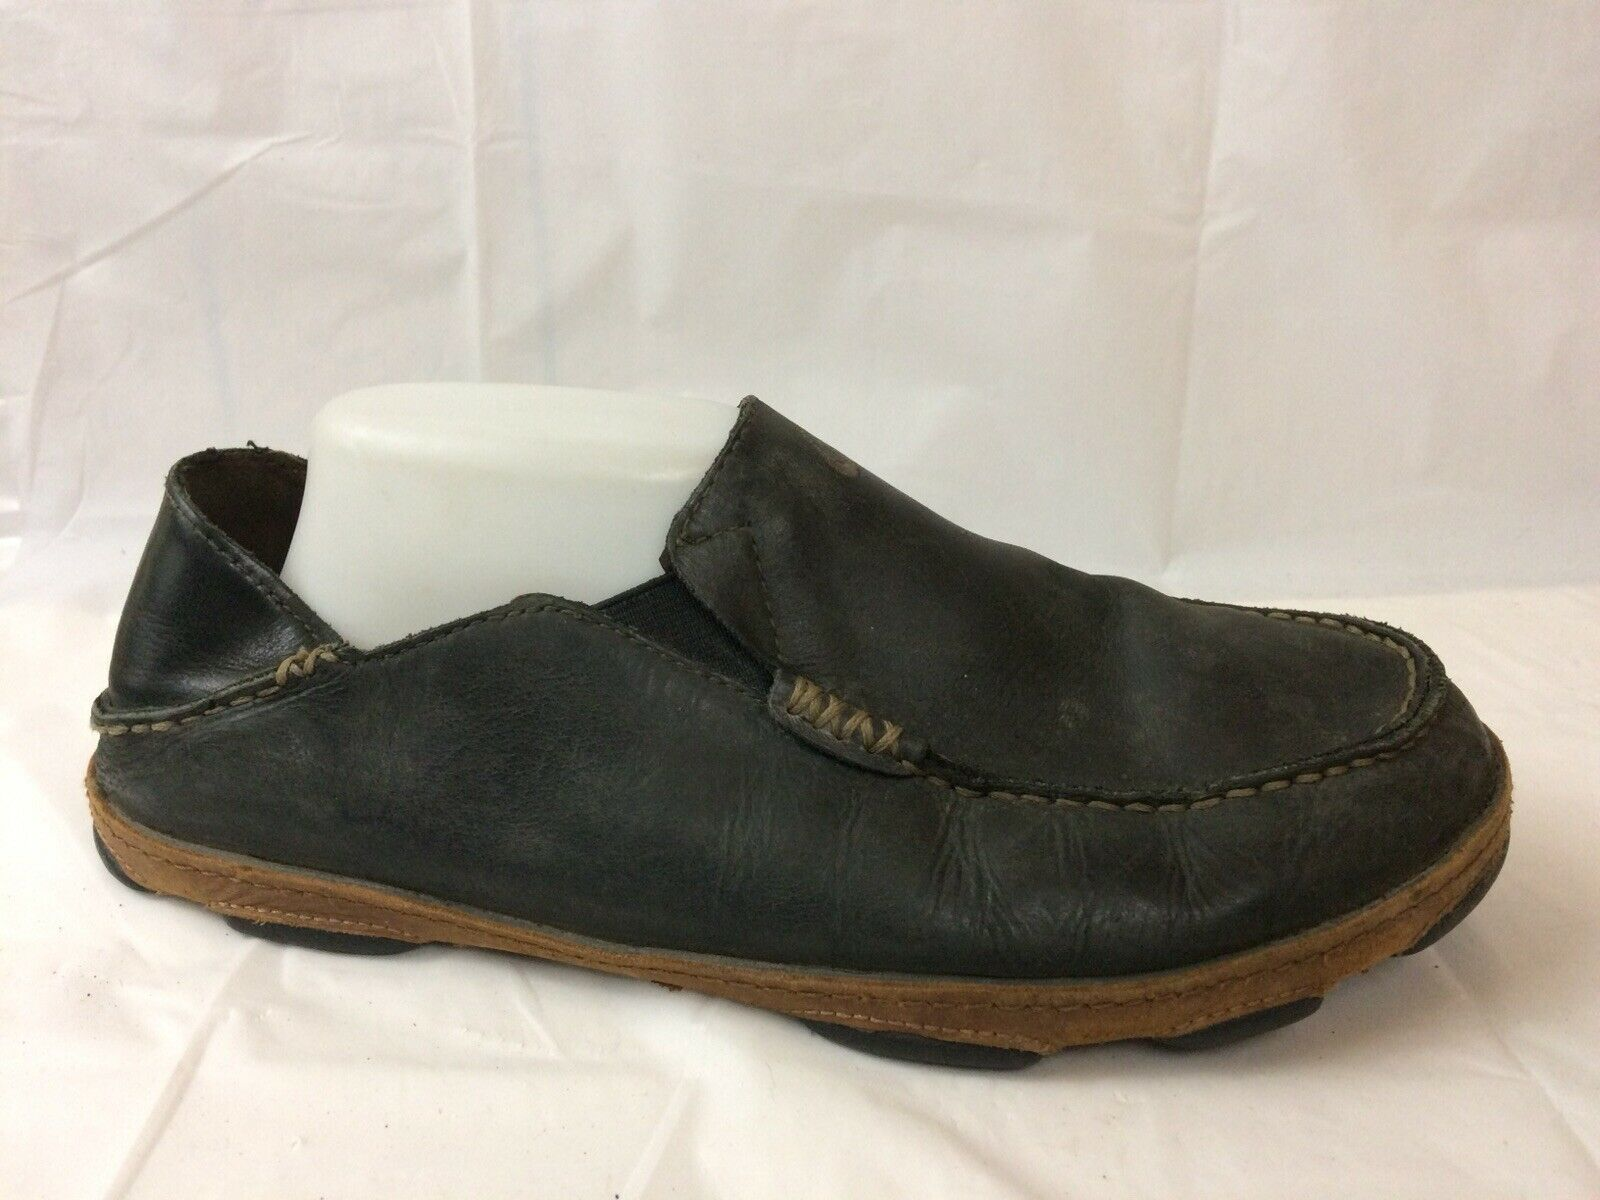 Olukai Moloa Mens 9.5 Med Black Moc Slip On Clogs shoes Casual Leather Loafers